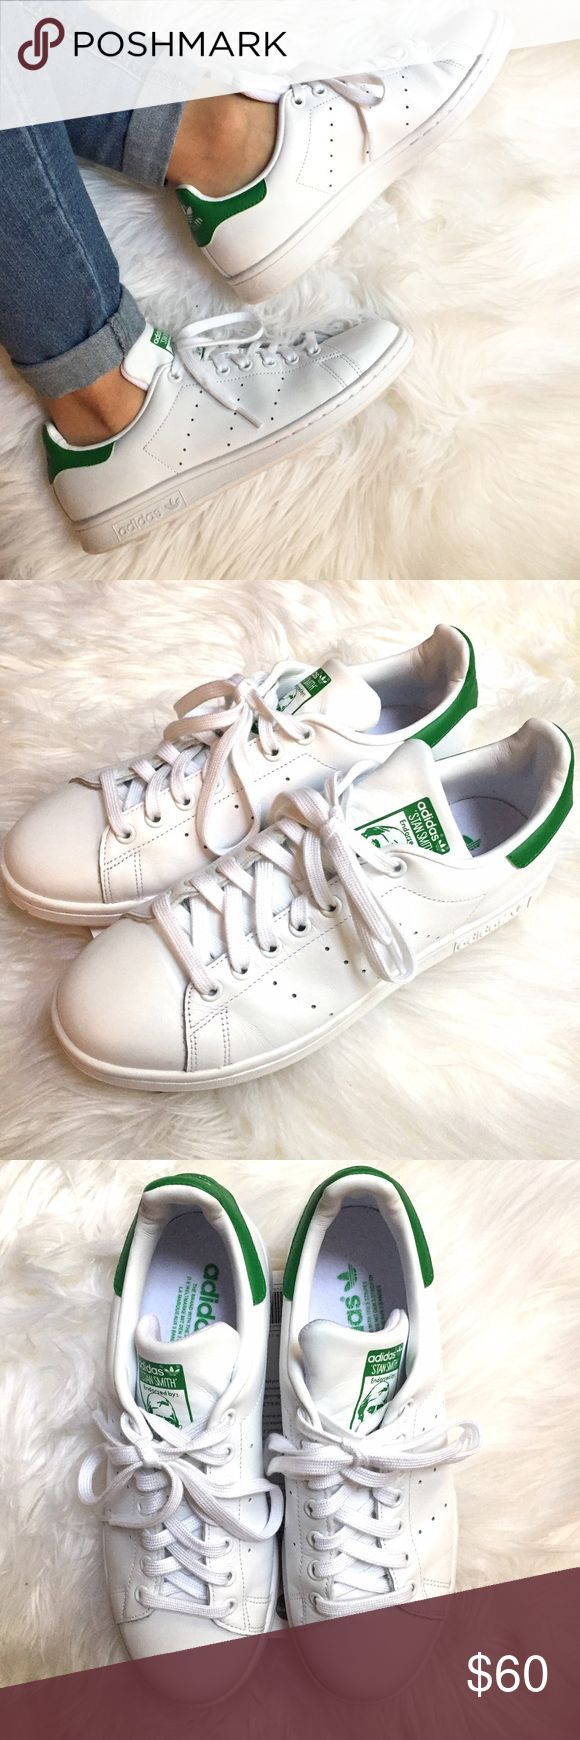 Adidas Stan Smith Sneakers Grab this pair of Adidas Stan Smith Sneakers! In like-new condition, with minimal wear. Women's size 9. White/Green color.   🔸10% off bundles of 2 or more items 🔸No Trades 🔸Reasonable offers accepted 🔸Fast Shipping  Please comment with any questions! Adidas Shoes Athletic Shoes